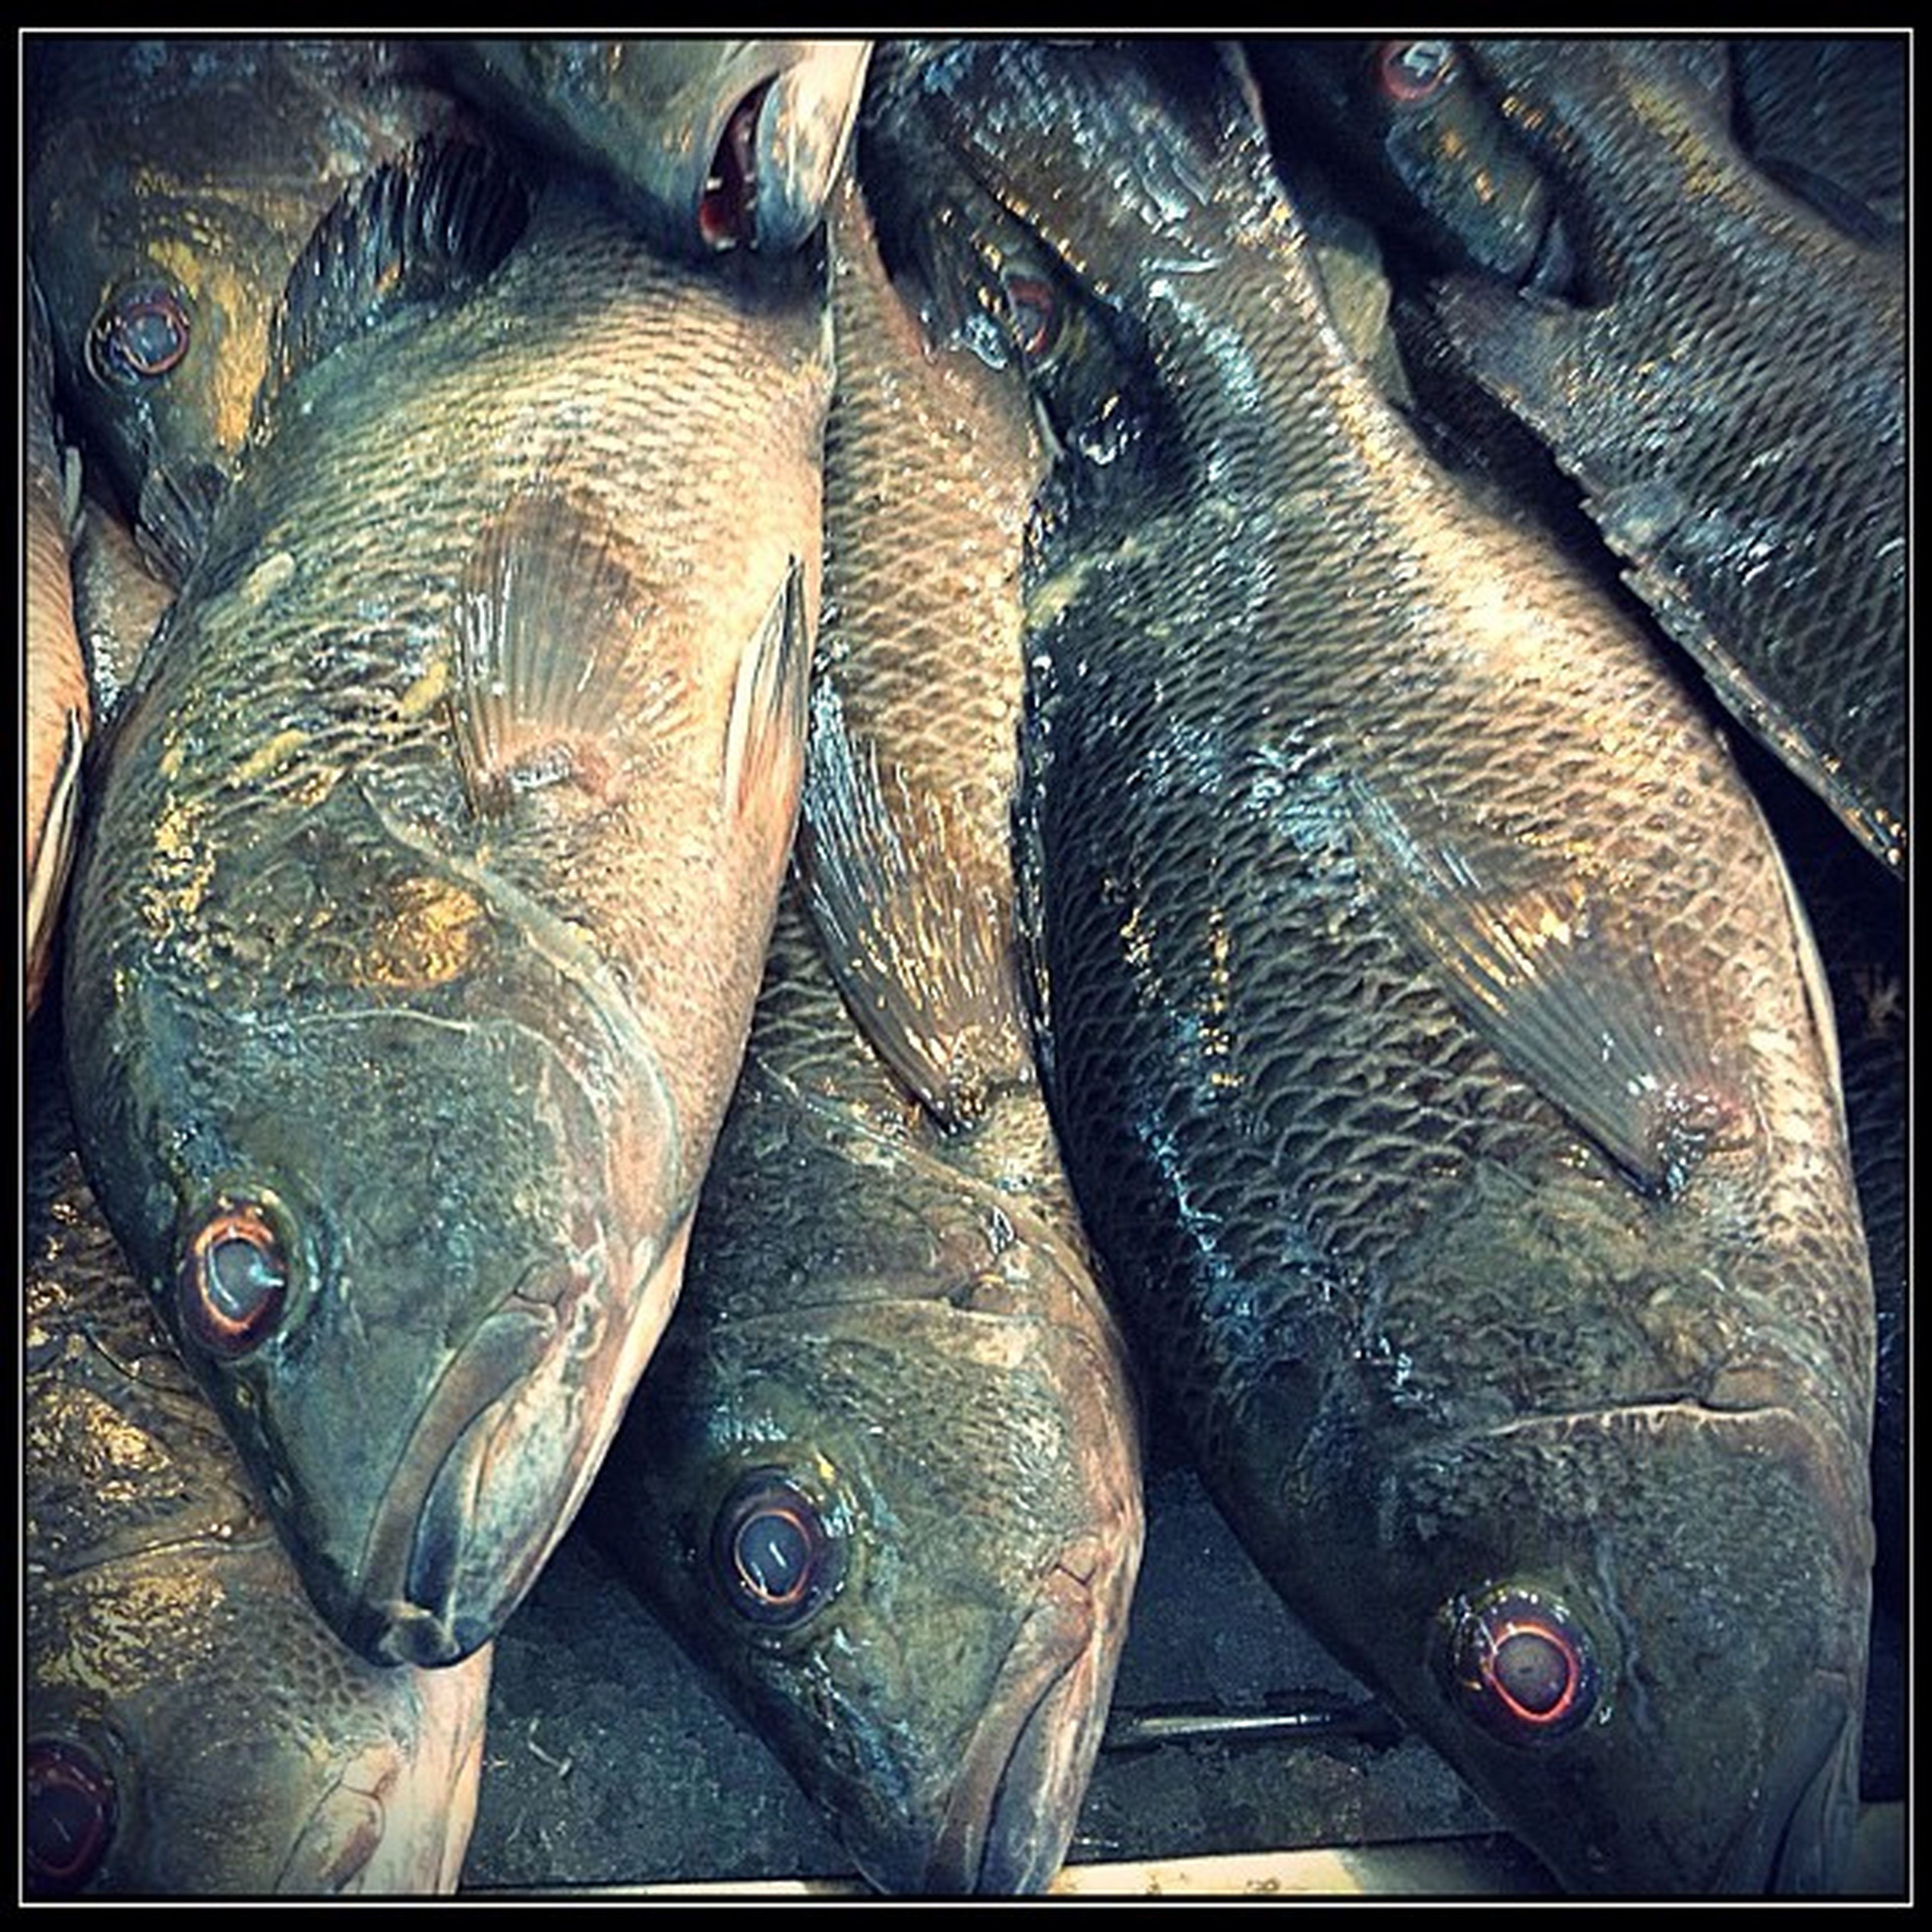 animal themes, indoors, transfer print, fish, seafood, dead animal, close-up, auto post production filter, one animal, retail, for sale, food and drink, food, fish market, animal head, animal body part, sale, healthy eating, market, market stall